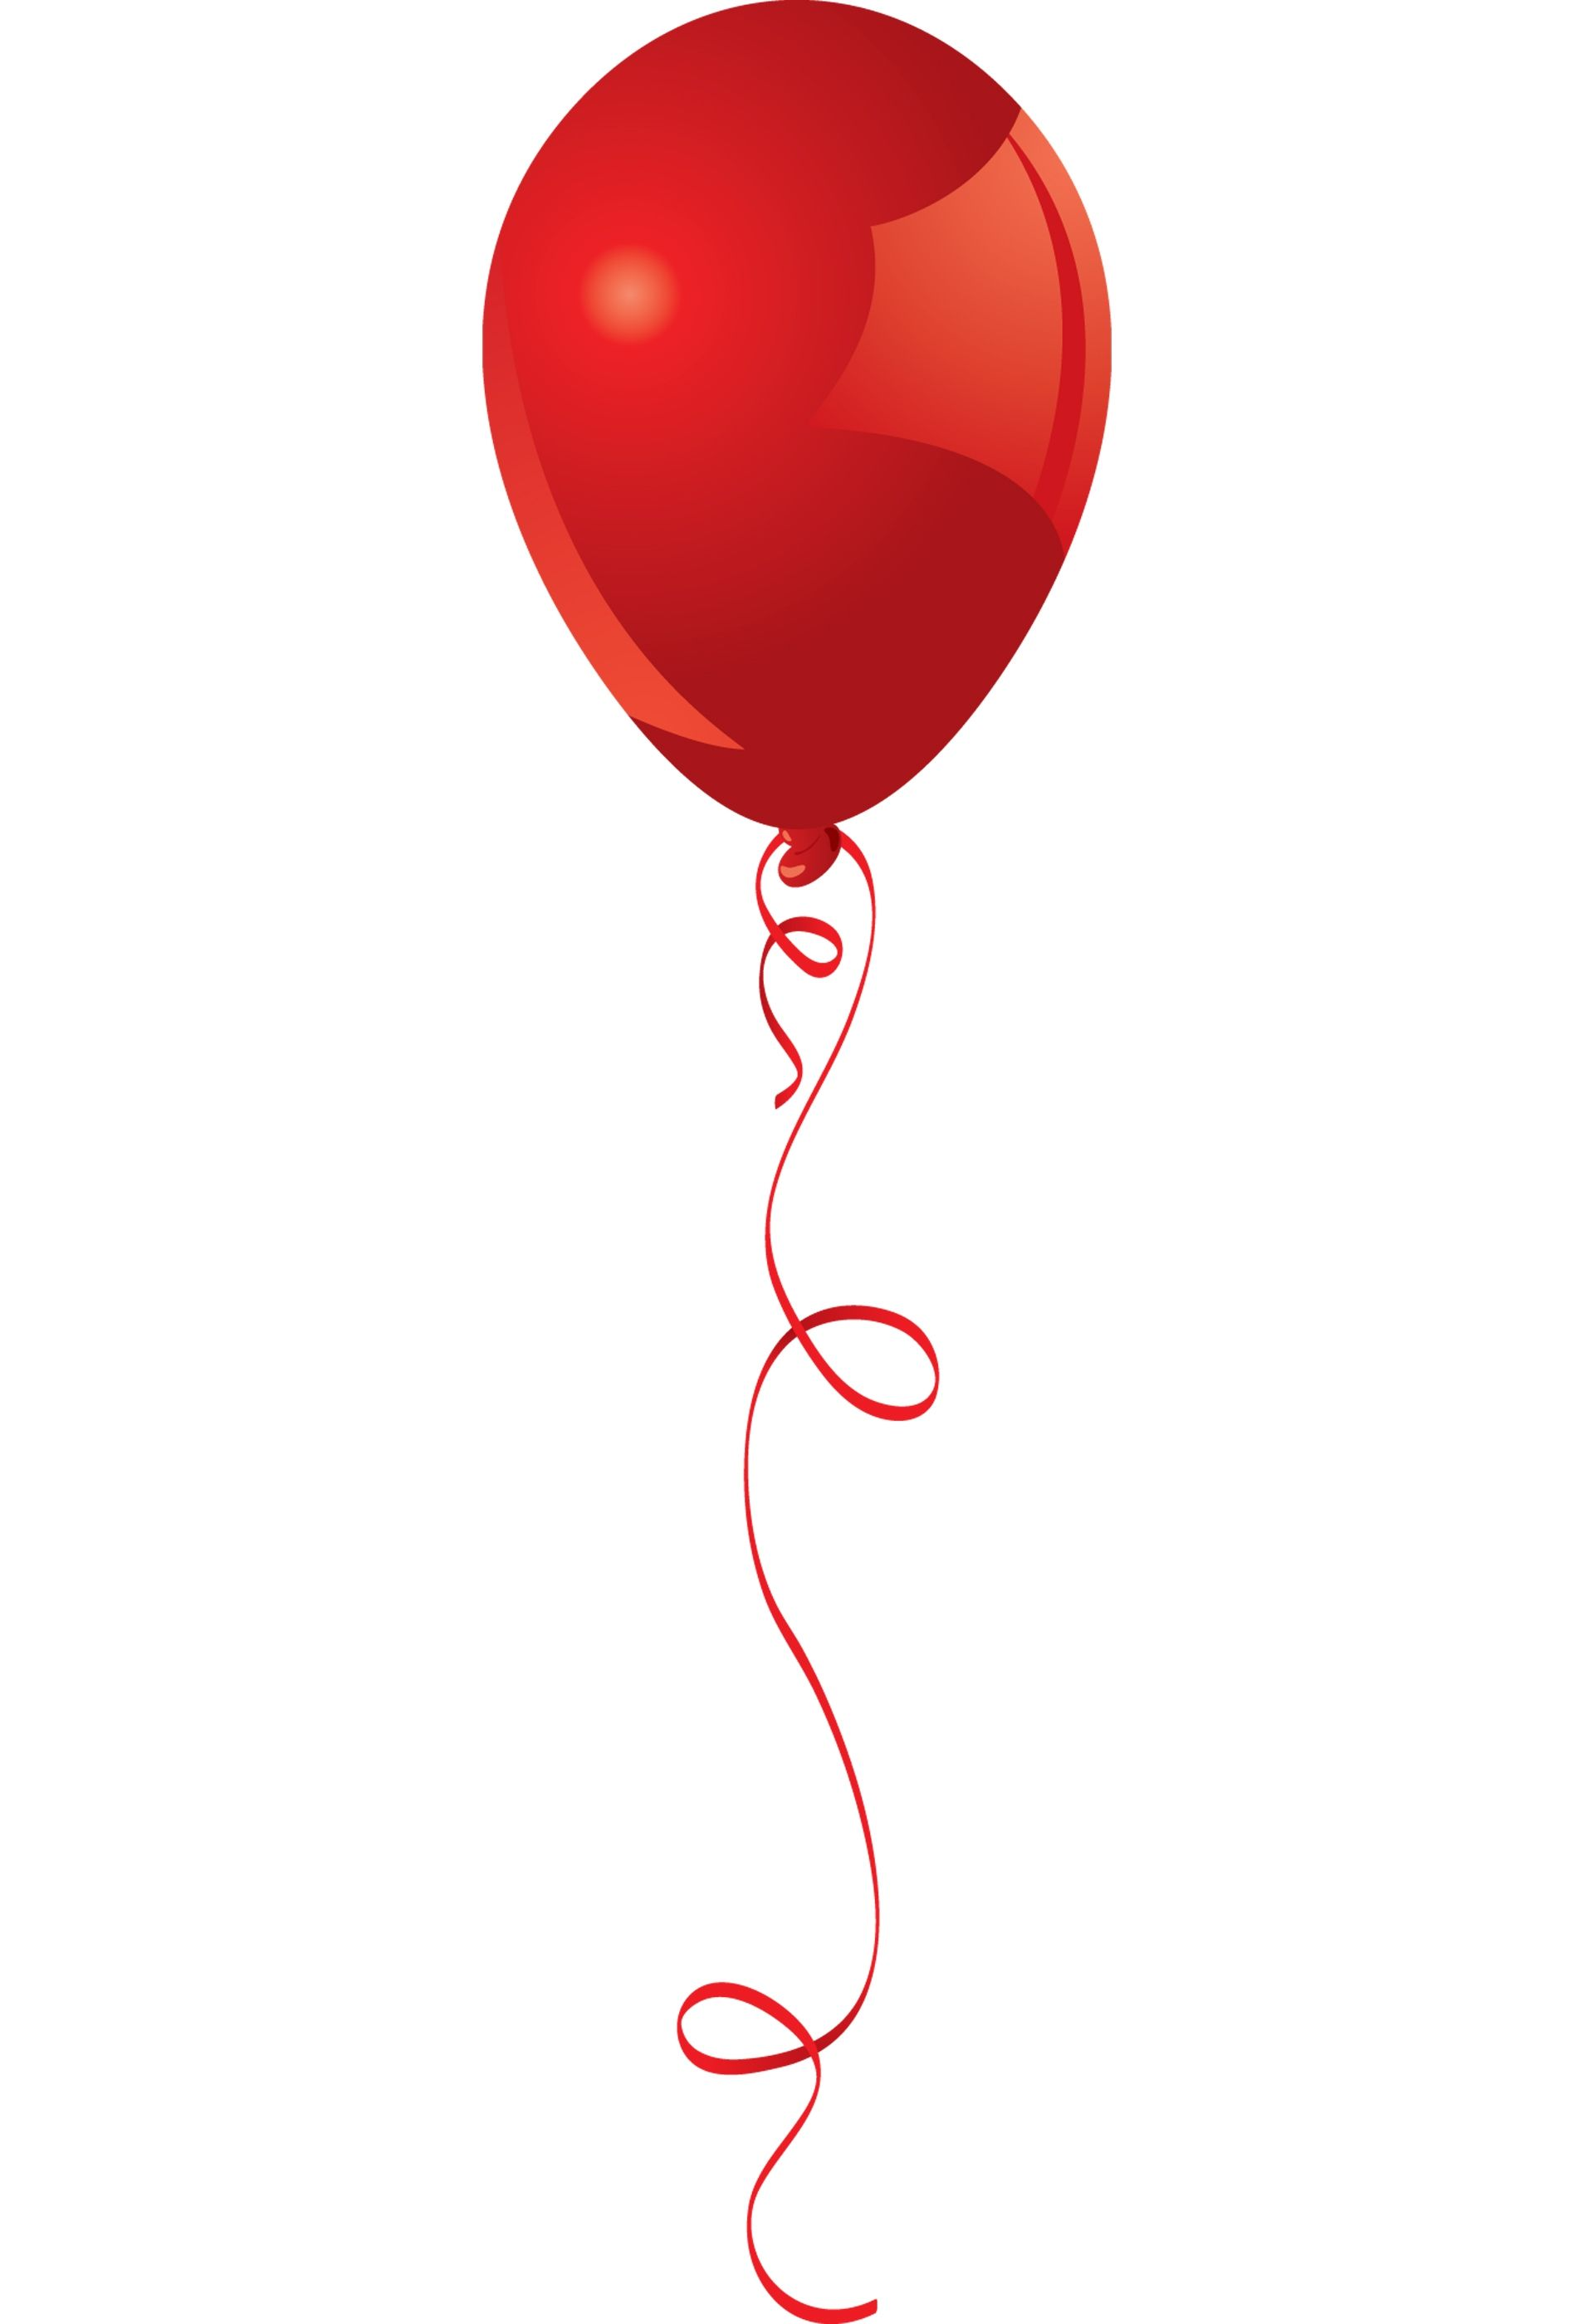 Balloon clipart pennywise. Red balloons need more